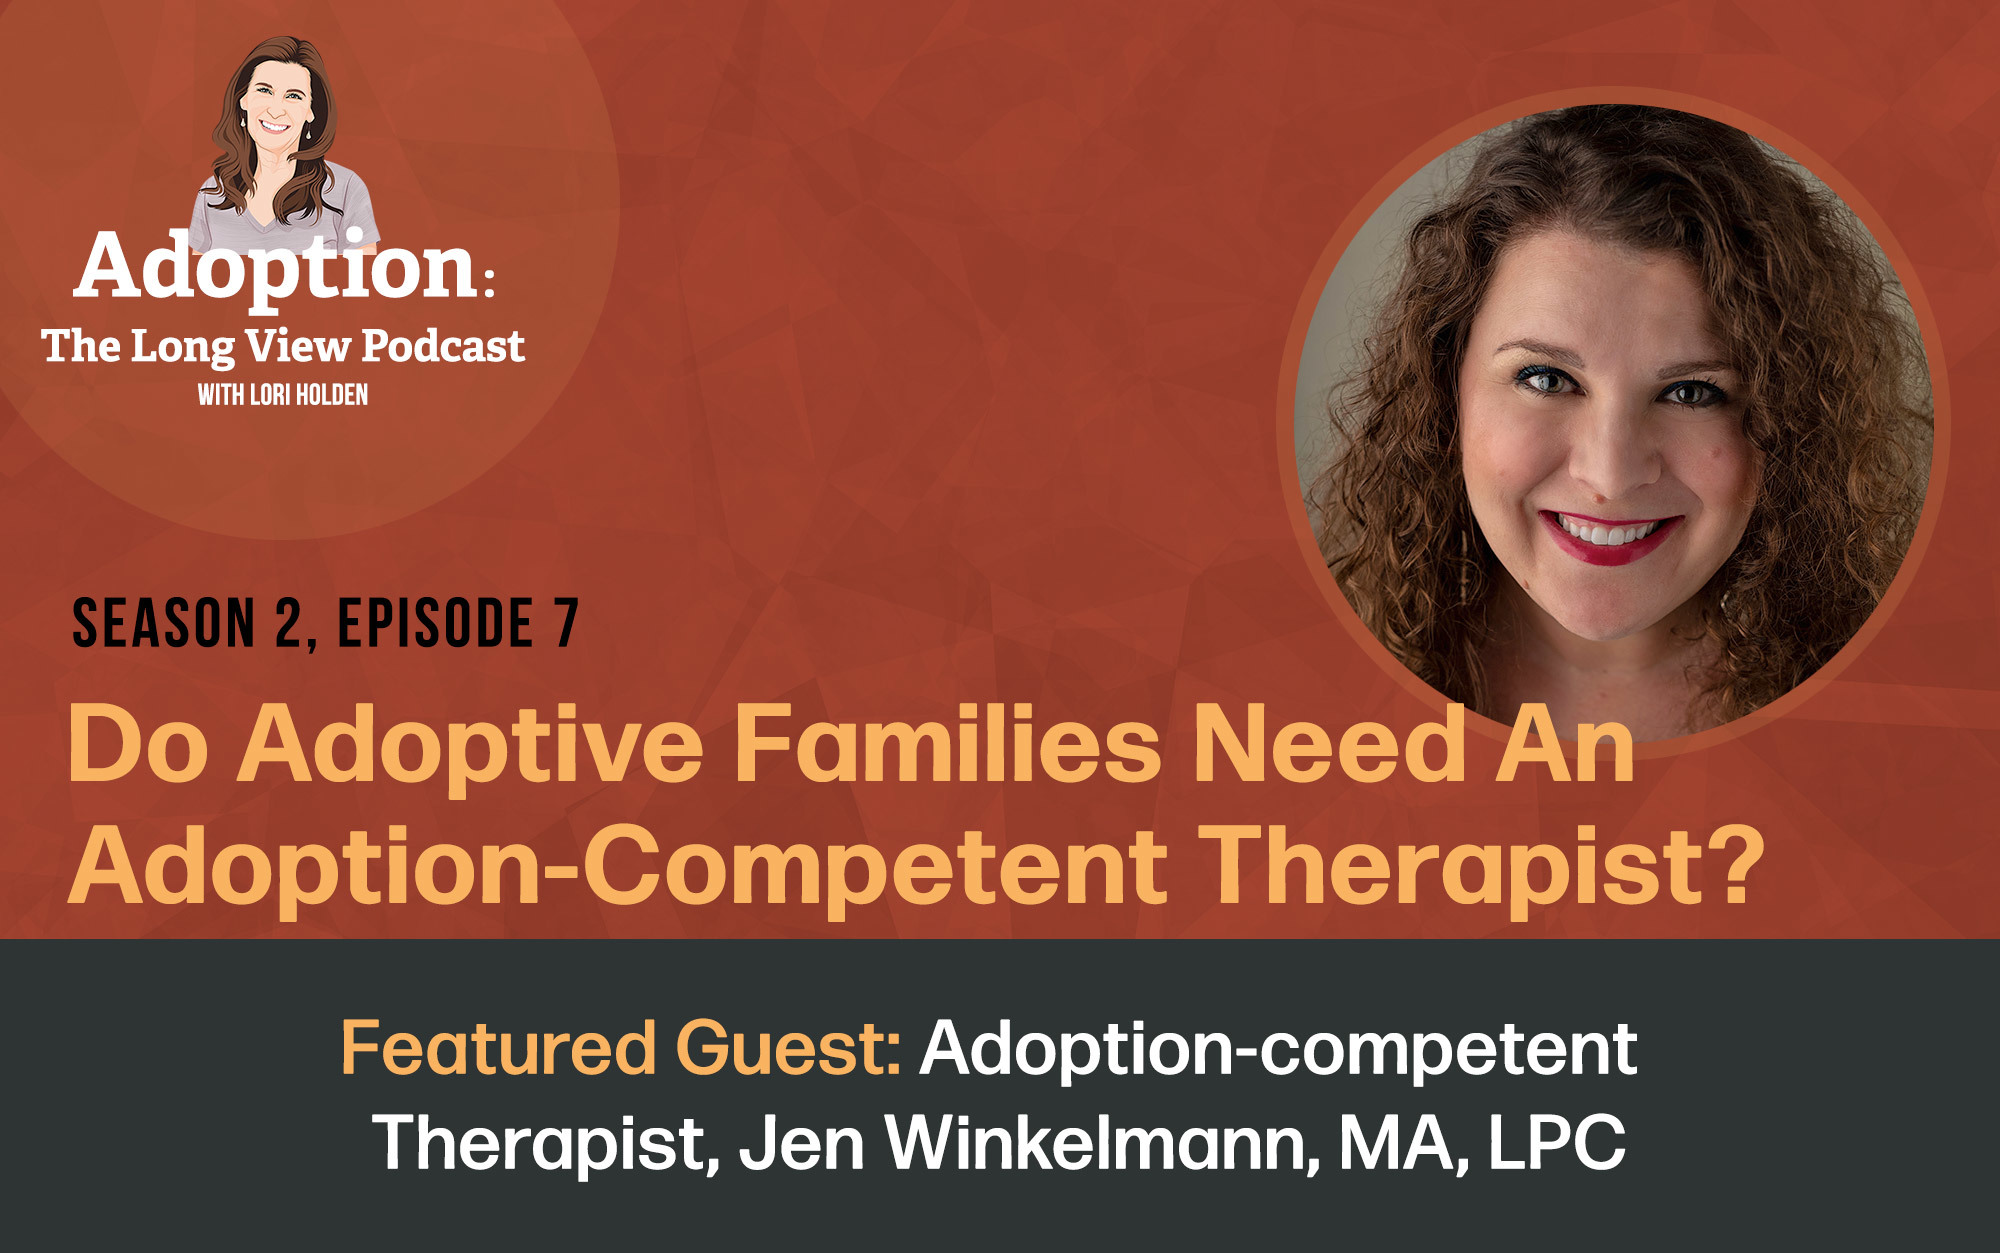 Adoption competent therapists long view ep7